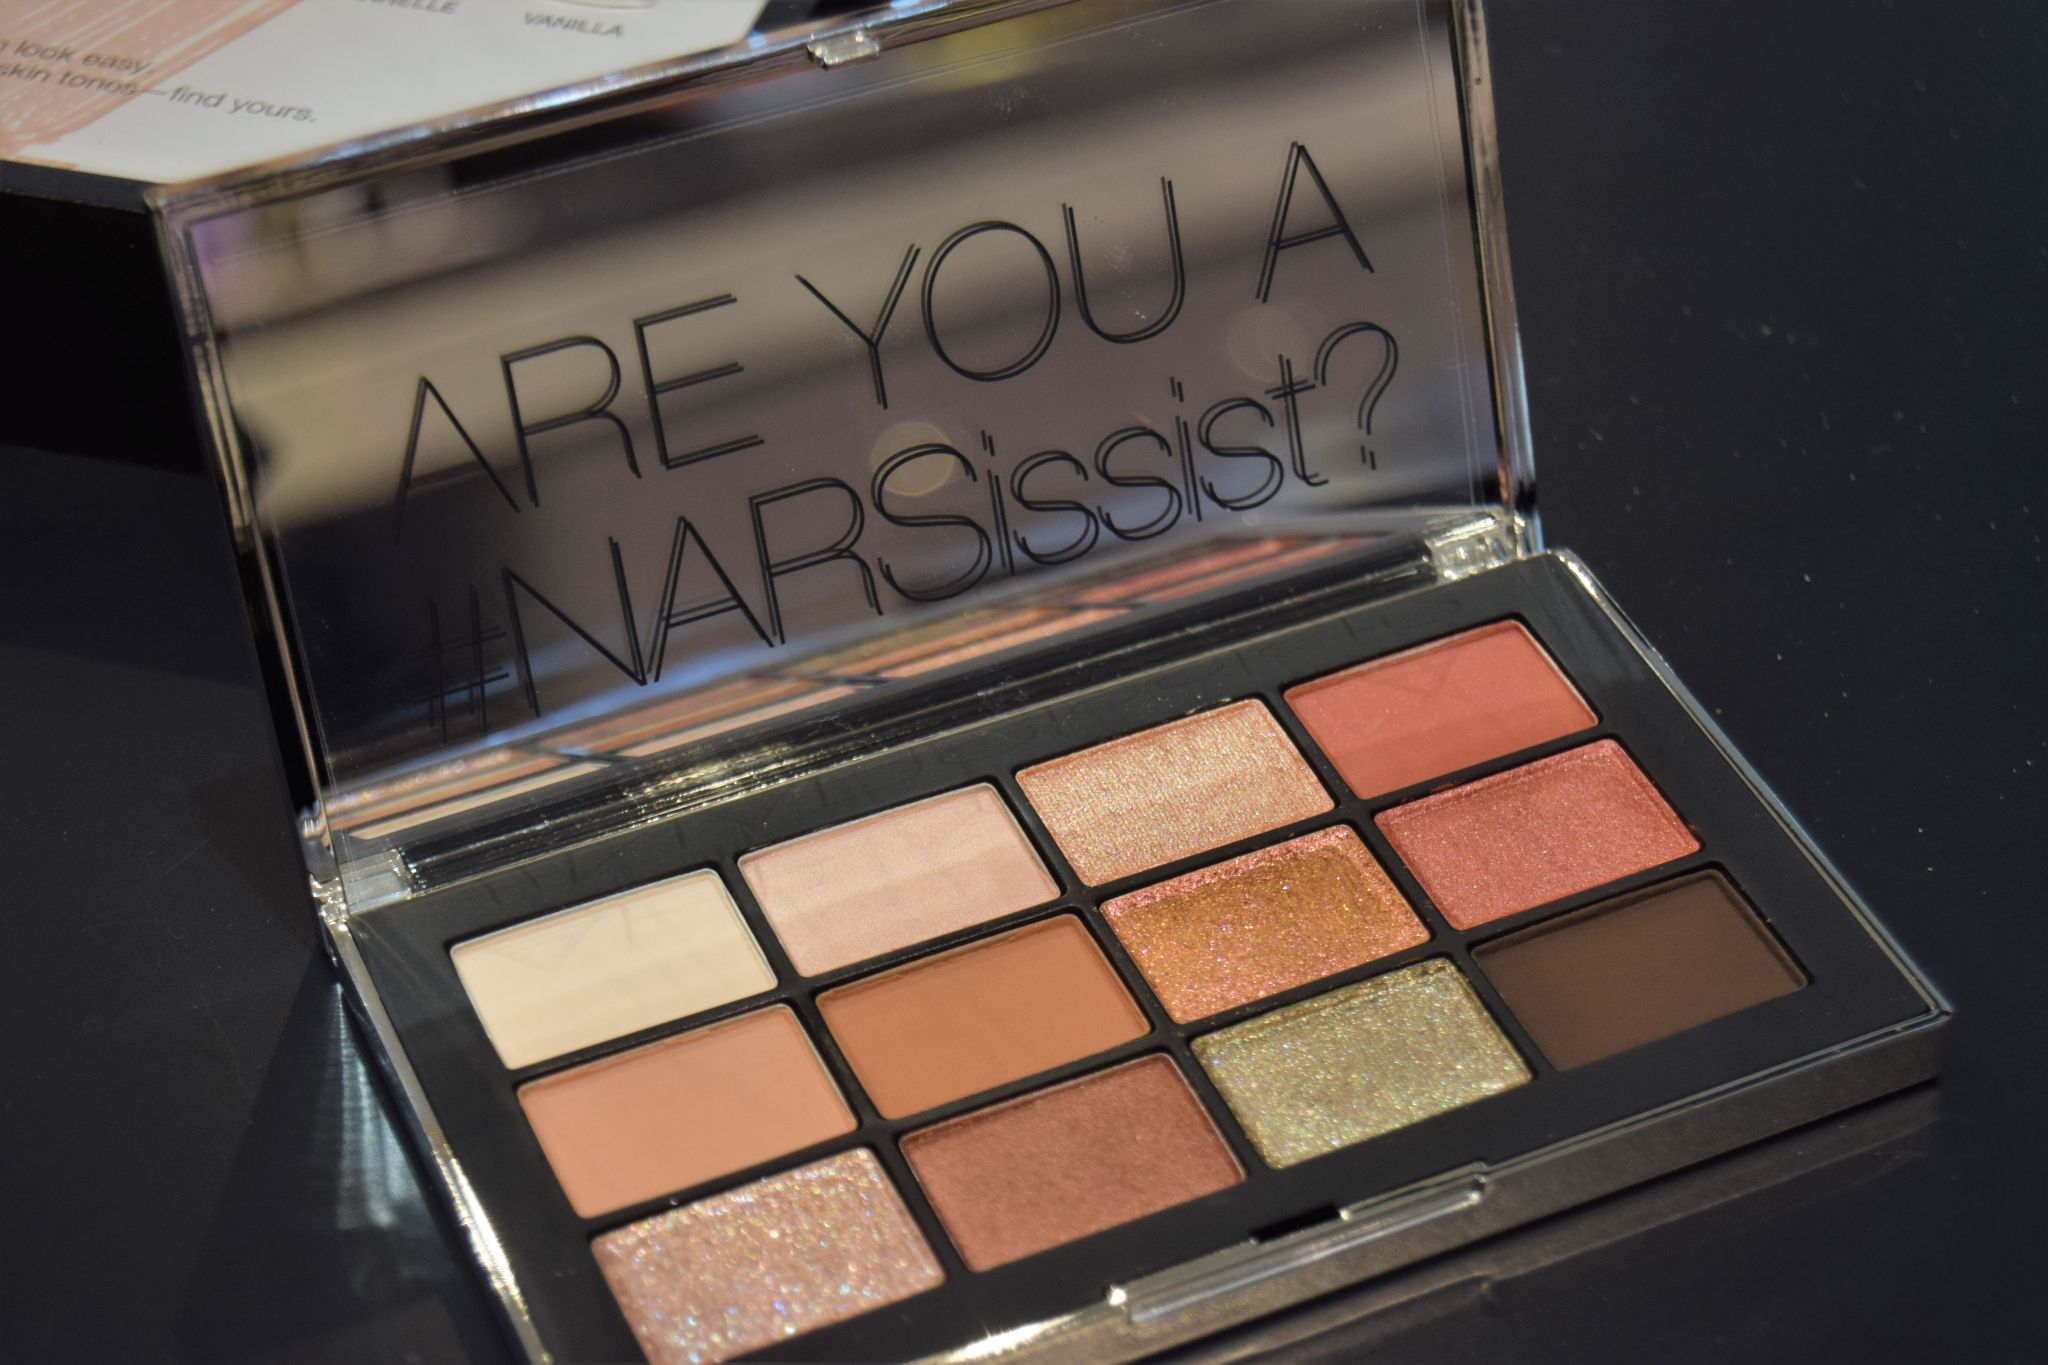 Nars wanted palette